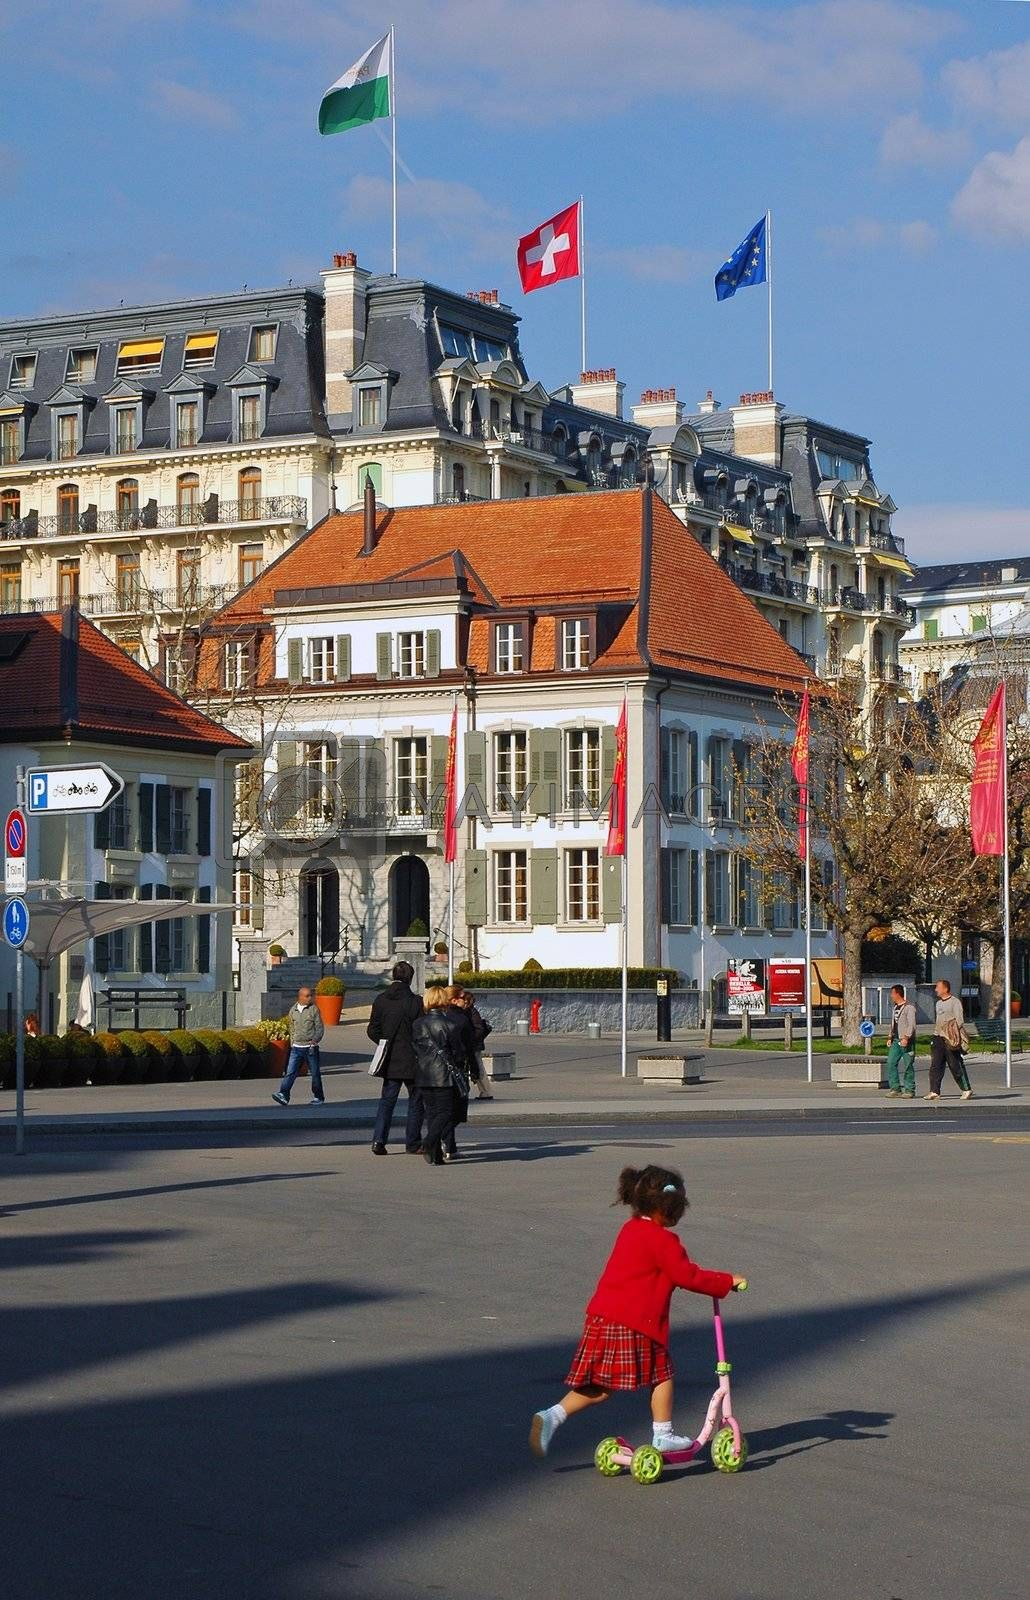 Street scene in Lausanne Switzerland showing various pedestrians and little girl with red sweater on bike.